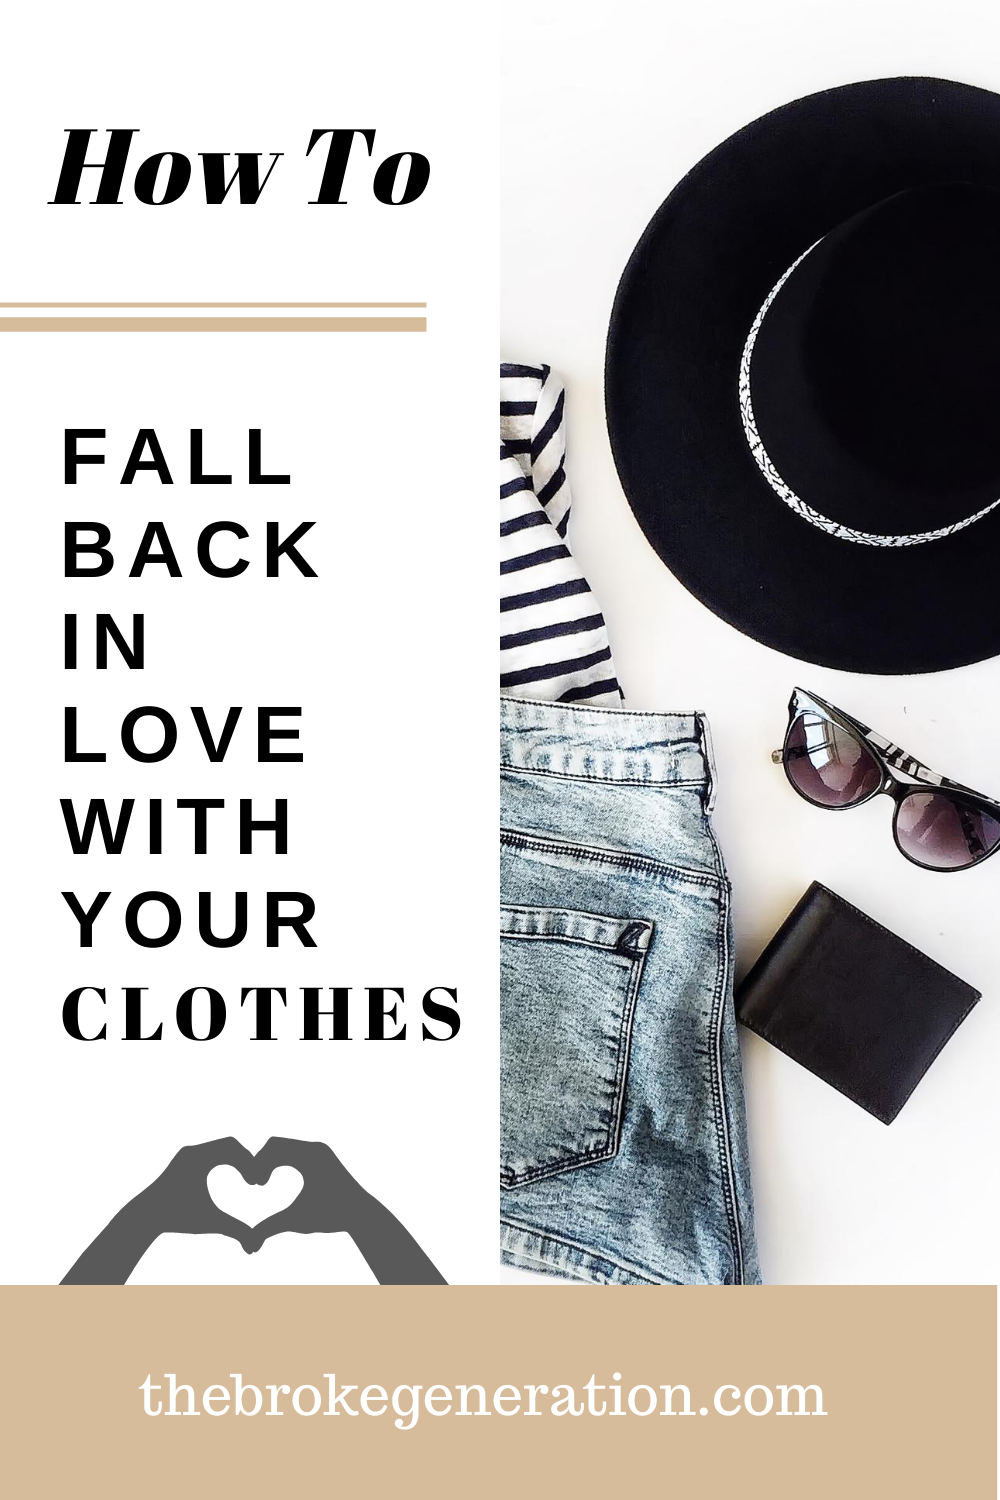 How to Fall Back in Love With Your Clothes